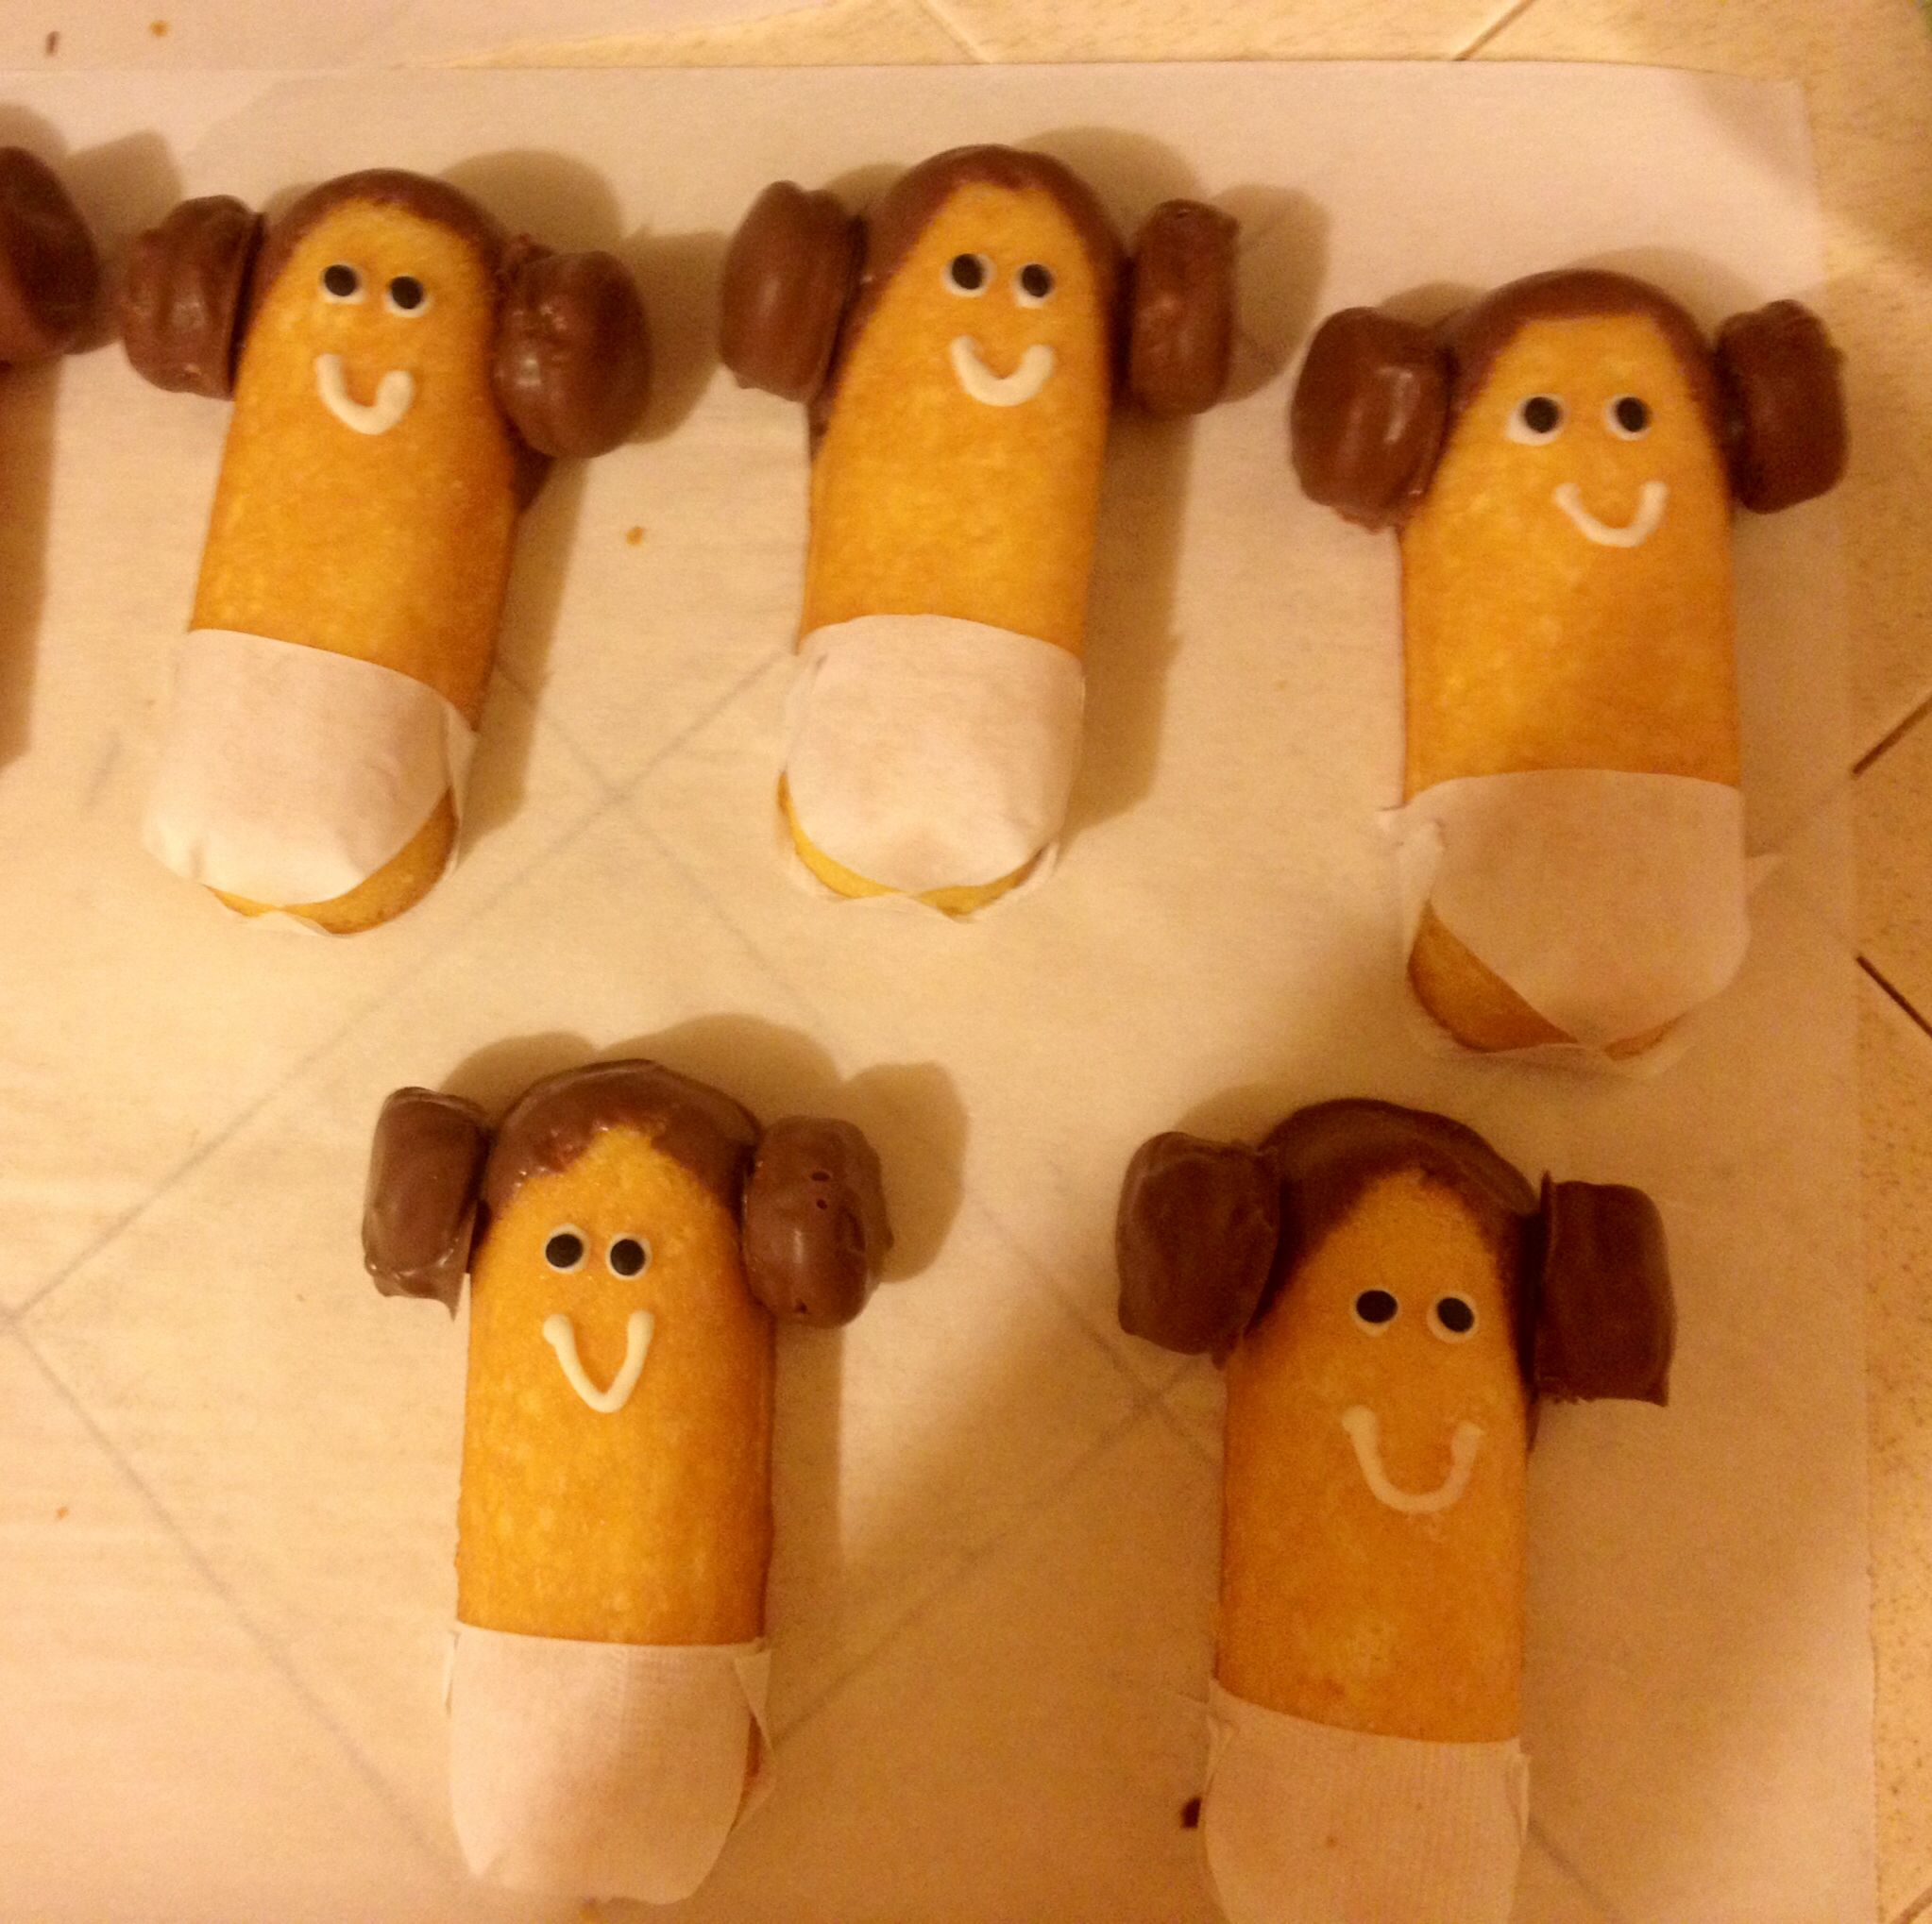 Dressed up these Twinkies for a Star Wars themed baby shower Meet